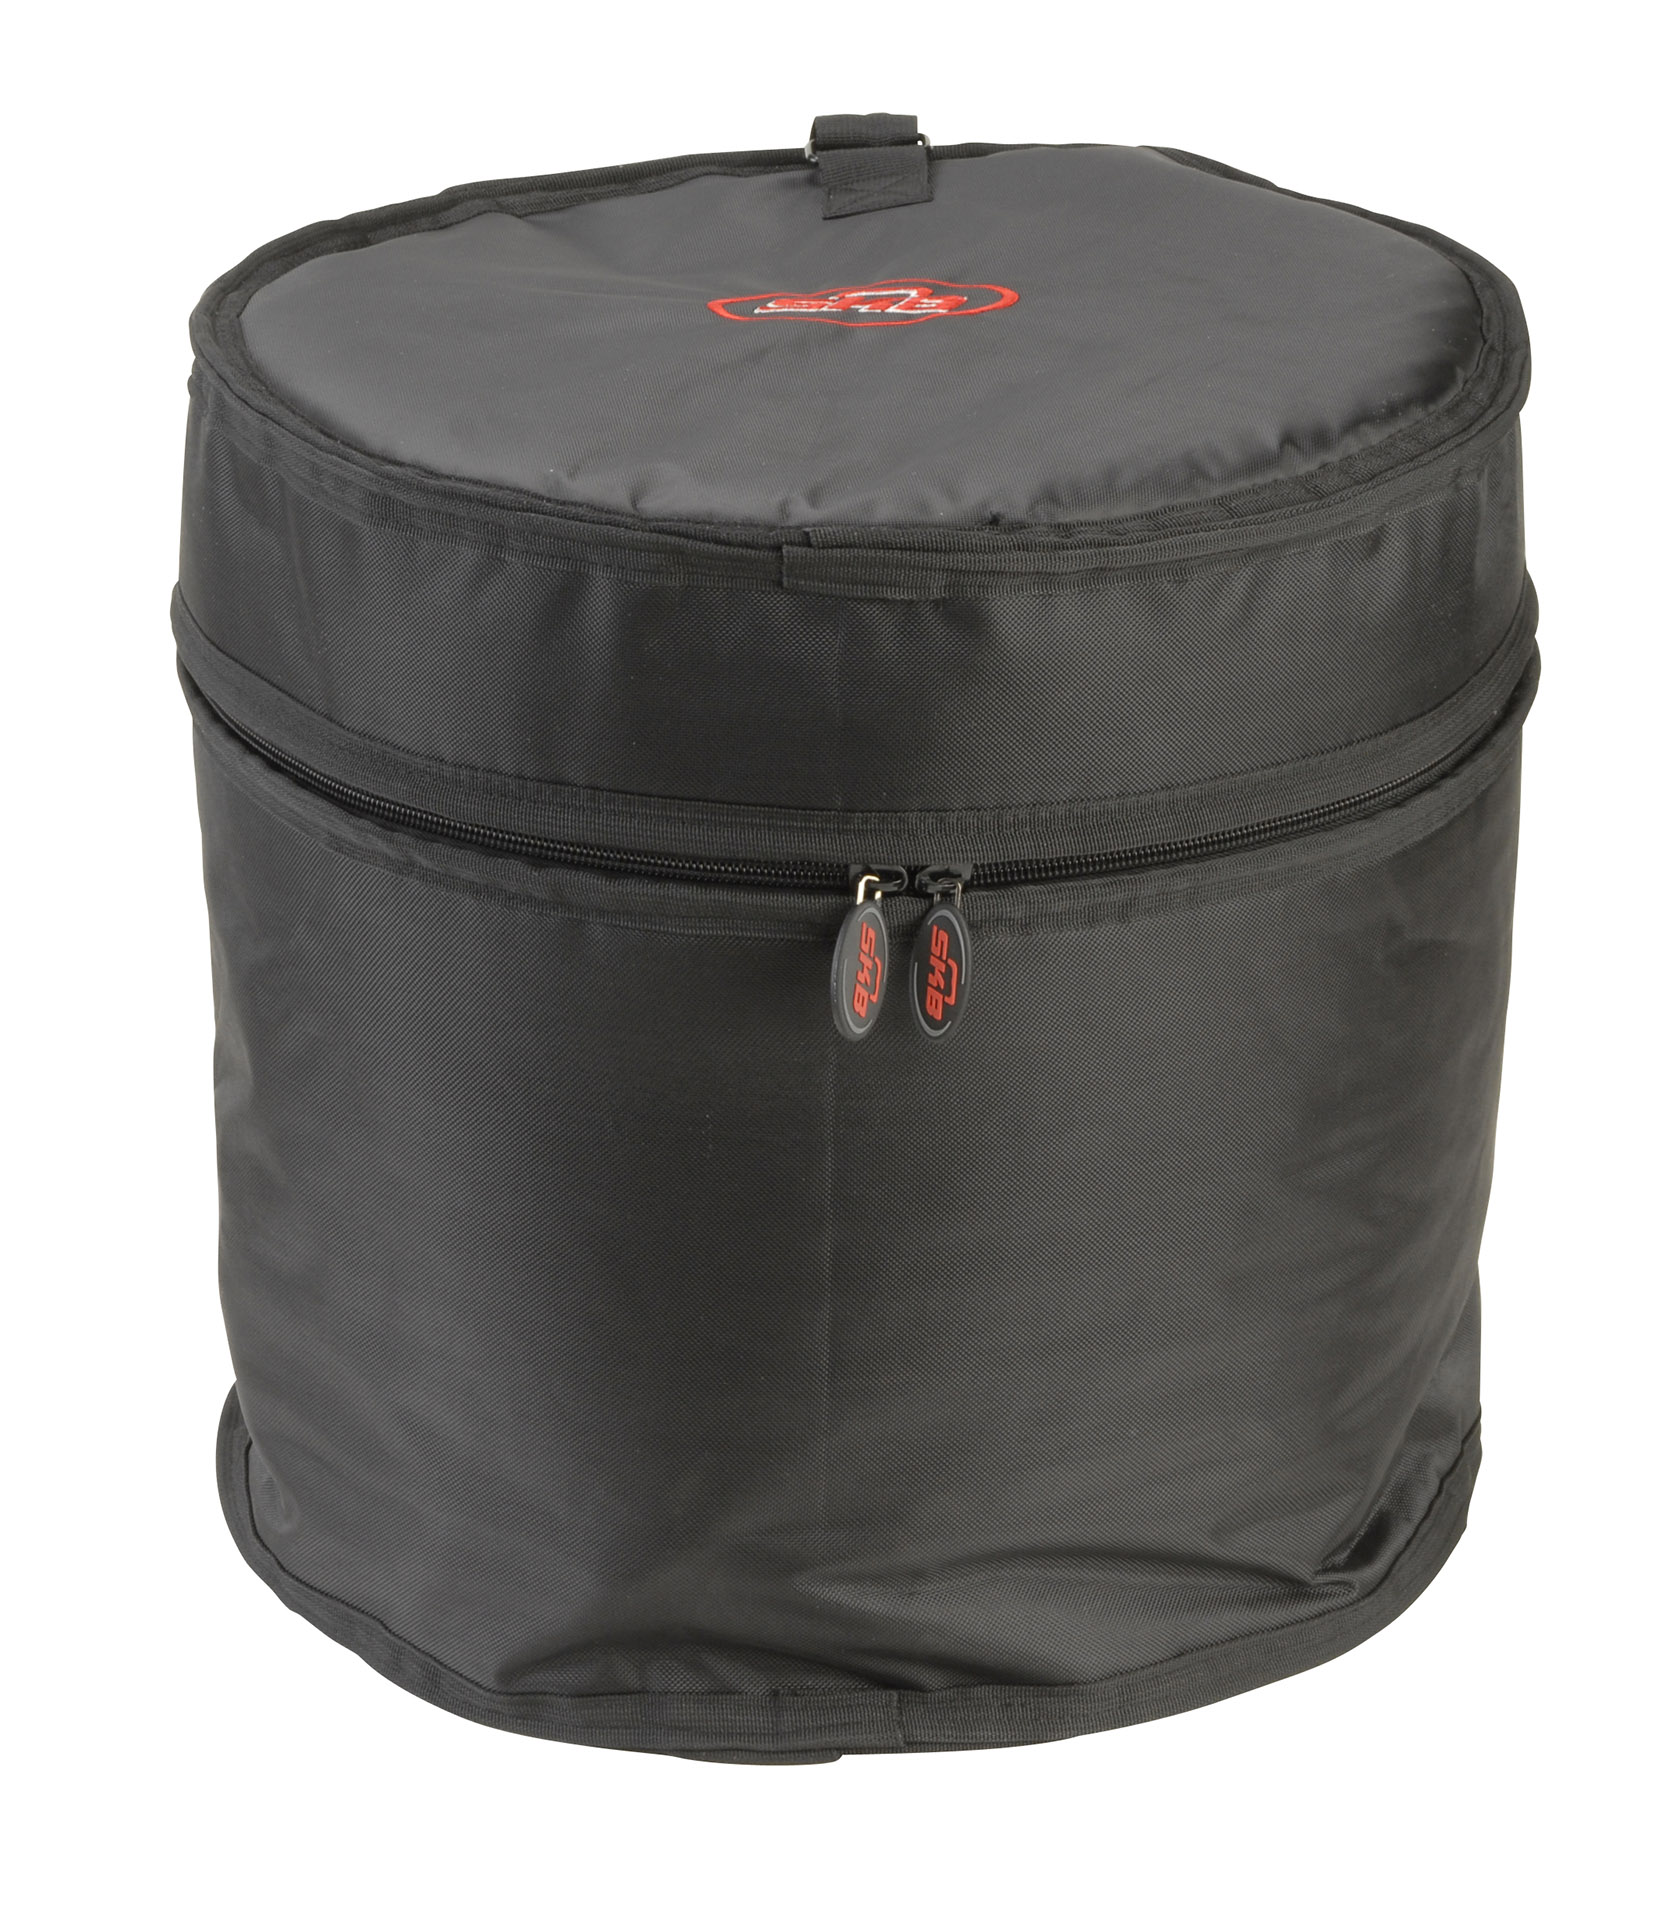 buy skb 1skb db1414 14 x 14 floor tom gig bag